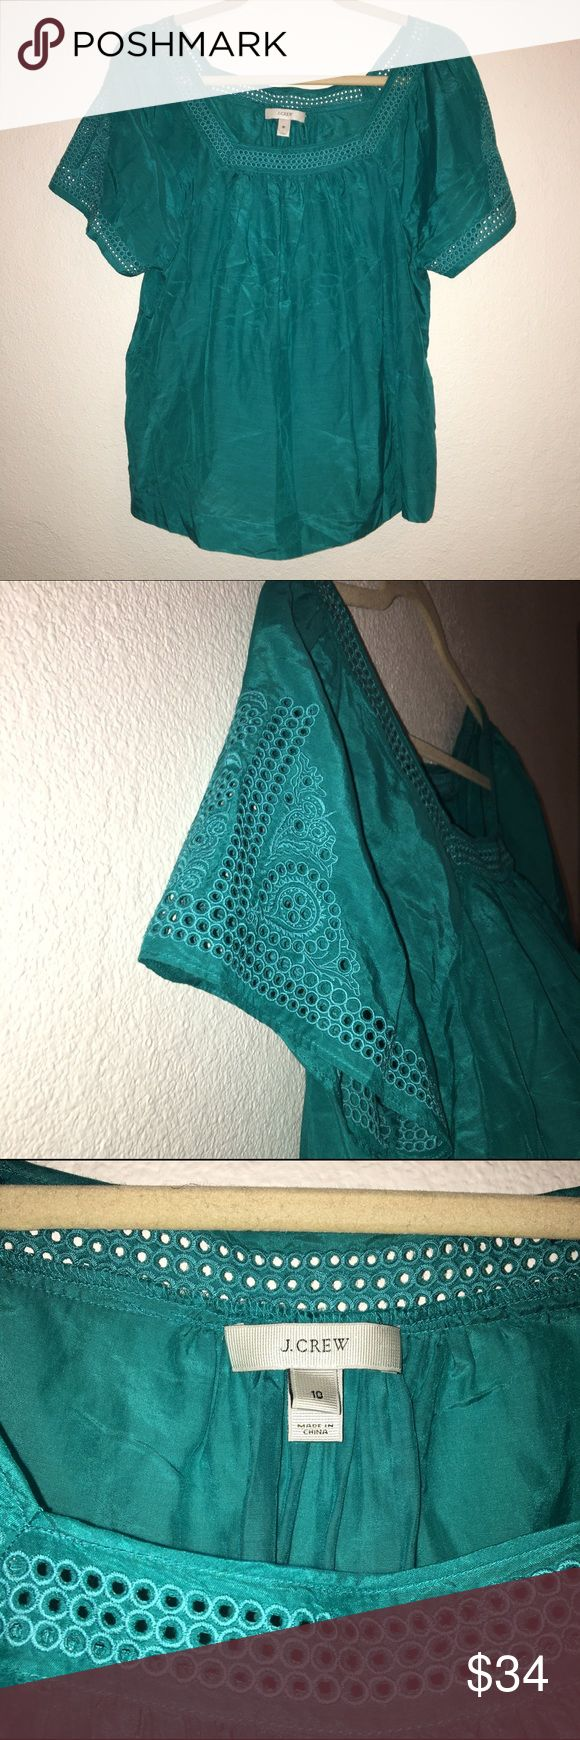 J CREW teal silk crochet short sleeve top worn once. silk blend. embroidered/crochet shoulder and neck. shiny teal/aqua color. J. Crew Tops Blouses